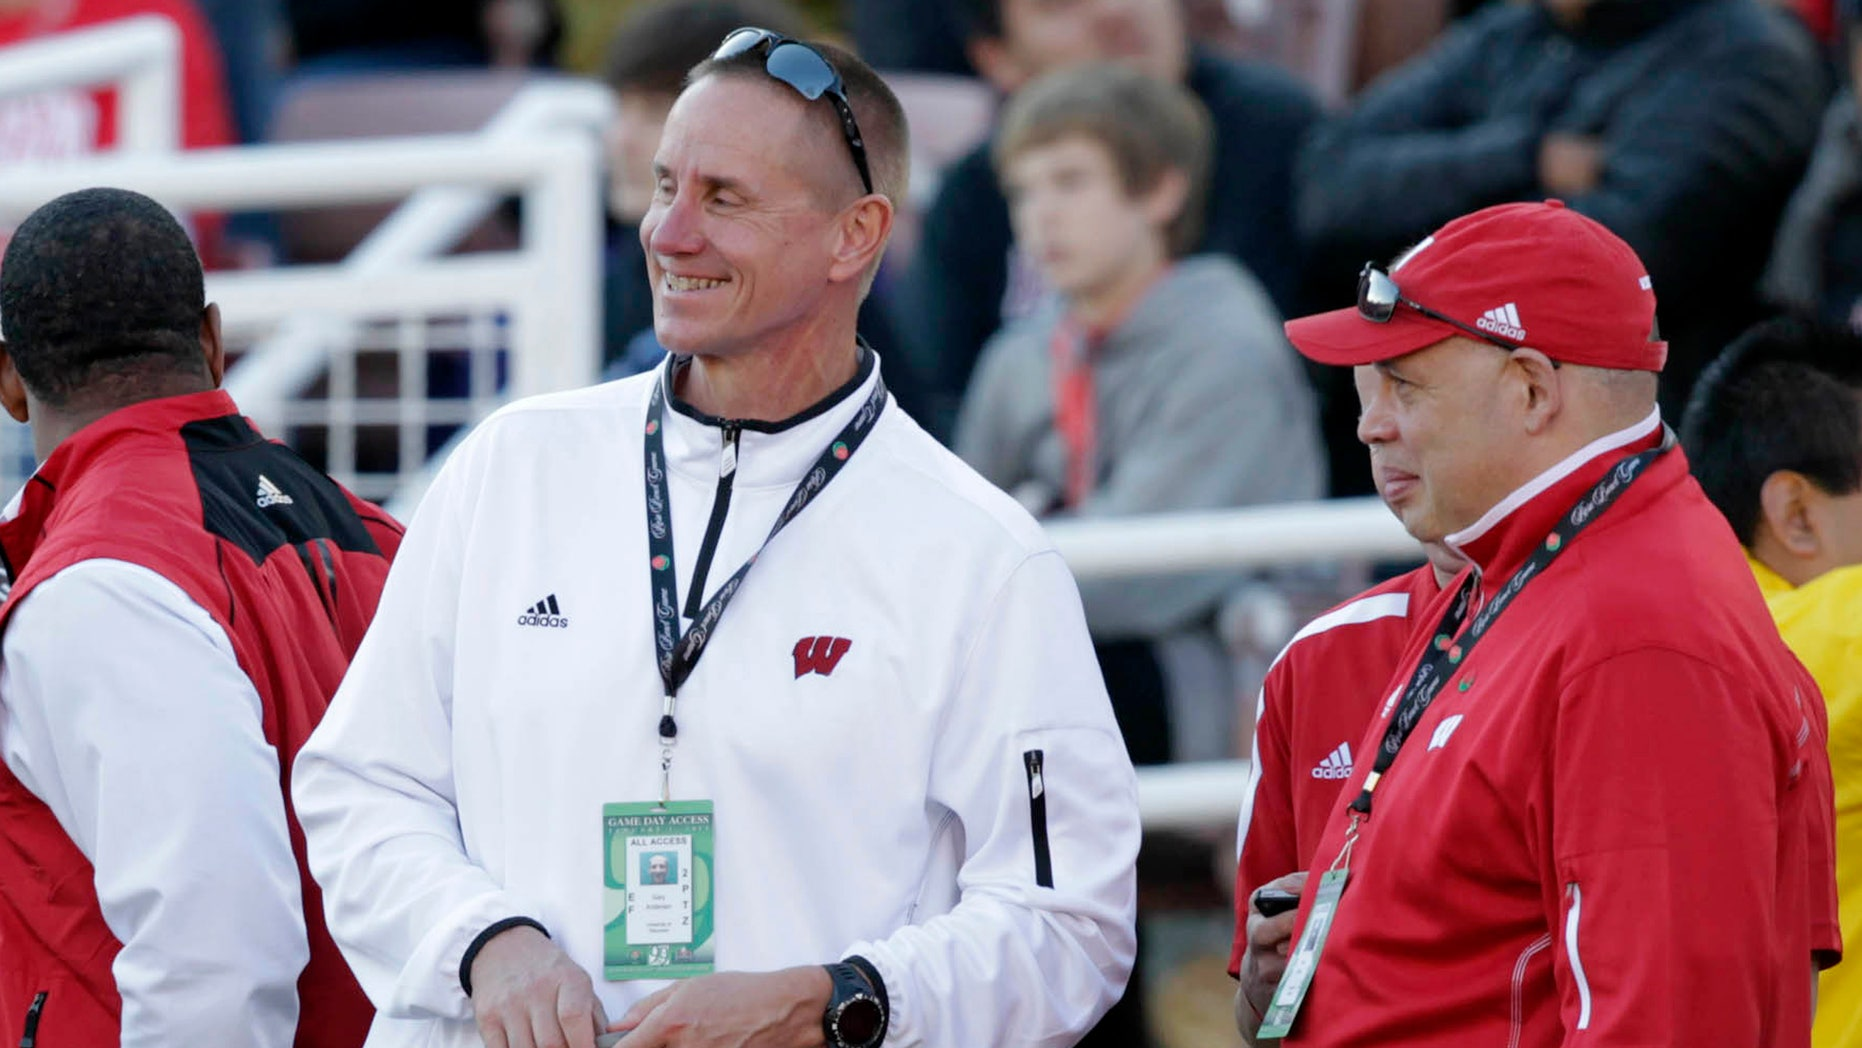 In this photo taken Jan. 1, 2013, the Wisconsin new  football coach Gary Andersen, center, watches from the sidelines with deputy athletic director Sean Frazier during the Rose Bowl football game between the Stanford Cardinals and Wisconsin in Pasadena, Calif. Andersen came into the spring with plenty of starters returning for the three-time defending Big Ten champion Badgers. But Montee Ball is gone, and an Ohio State team that went 12-0 last season is eligible again. (AP Photo/The Wisconsin State Journal, Michael P. King)